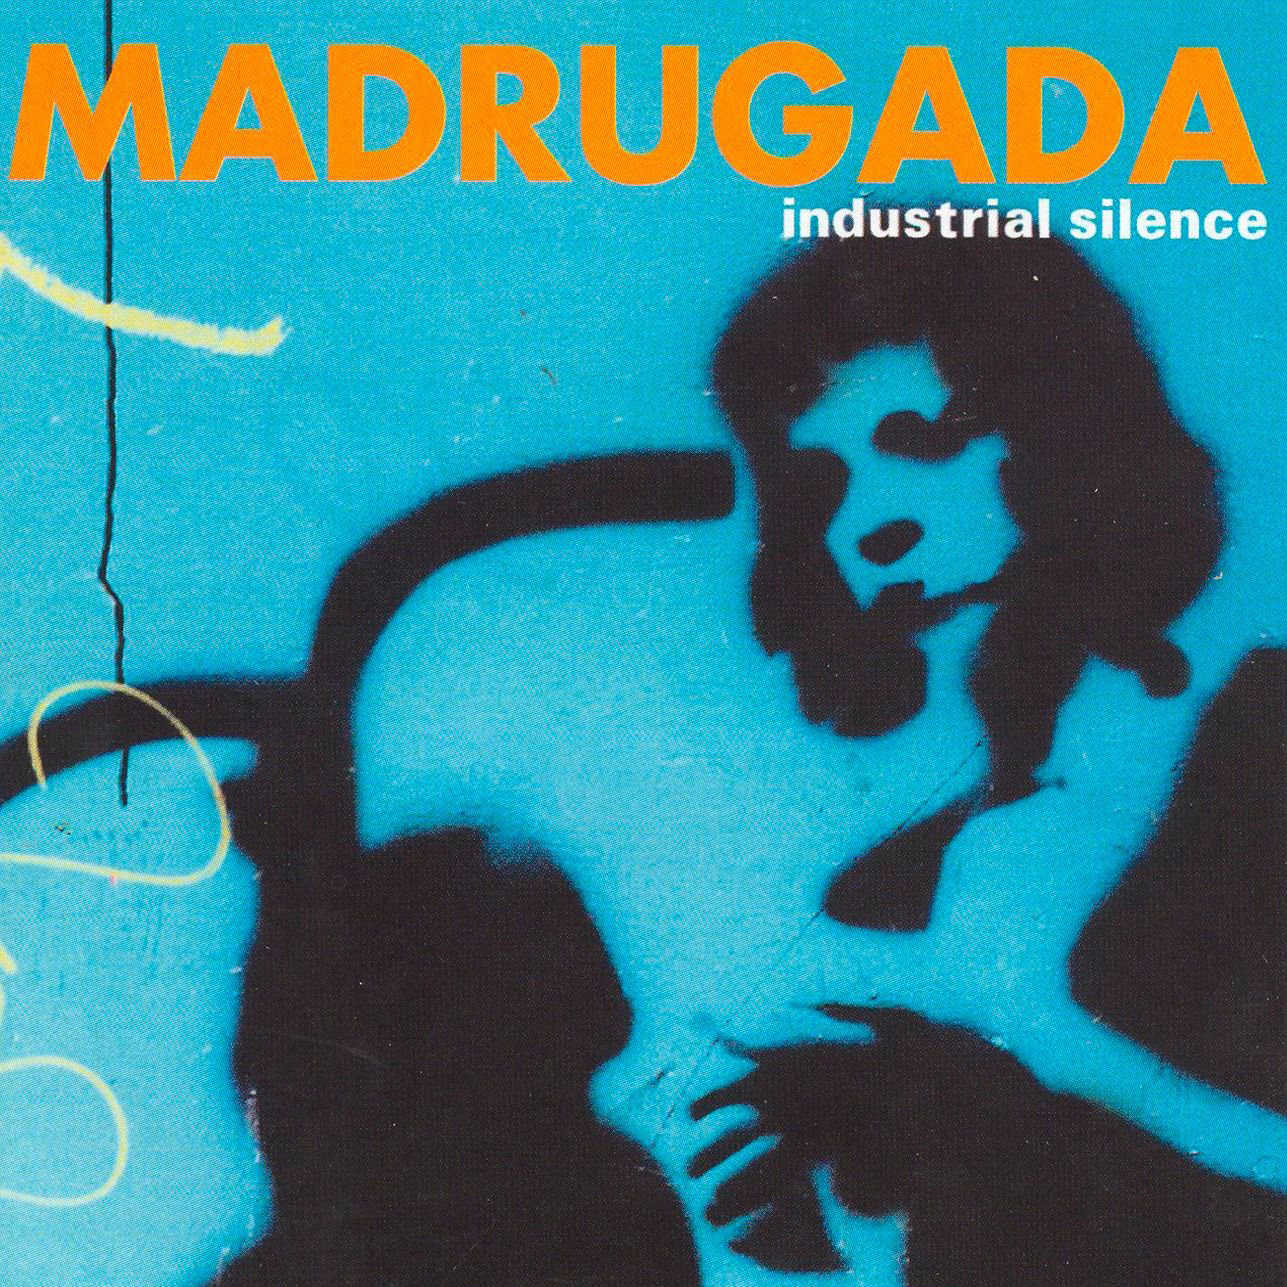 Madrugada: Industrial Silence (1999) Book Cover